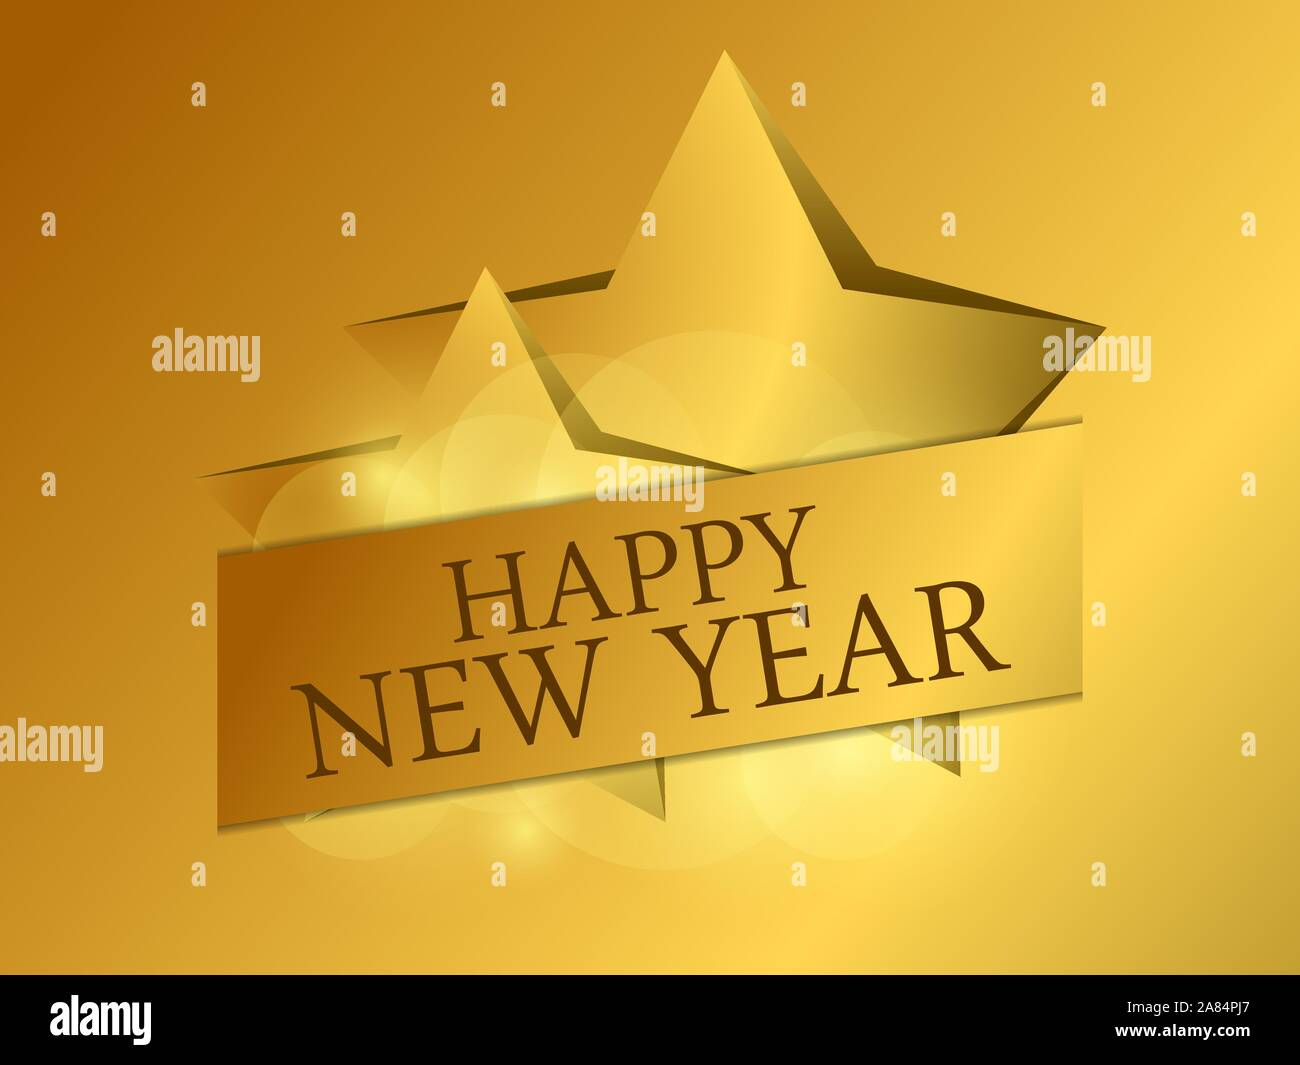 Happy New Year 2020 Golden Stars On Gold Gradient